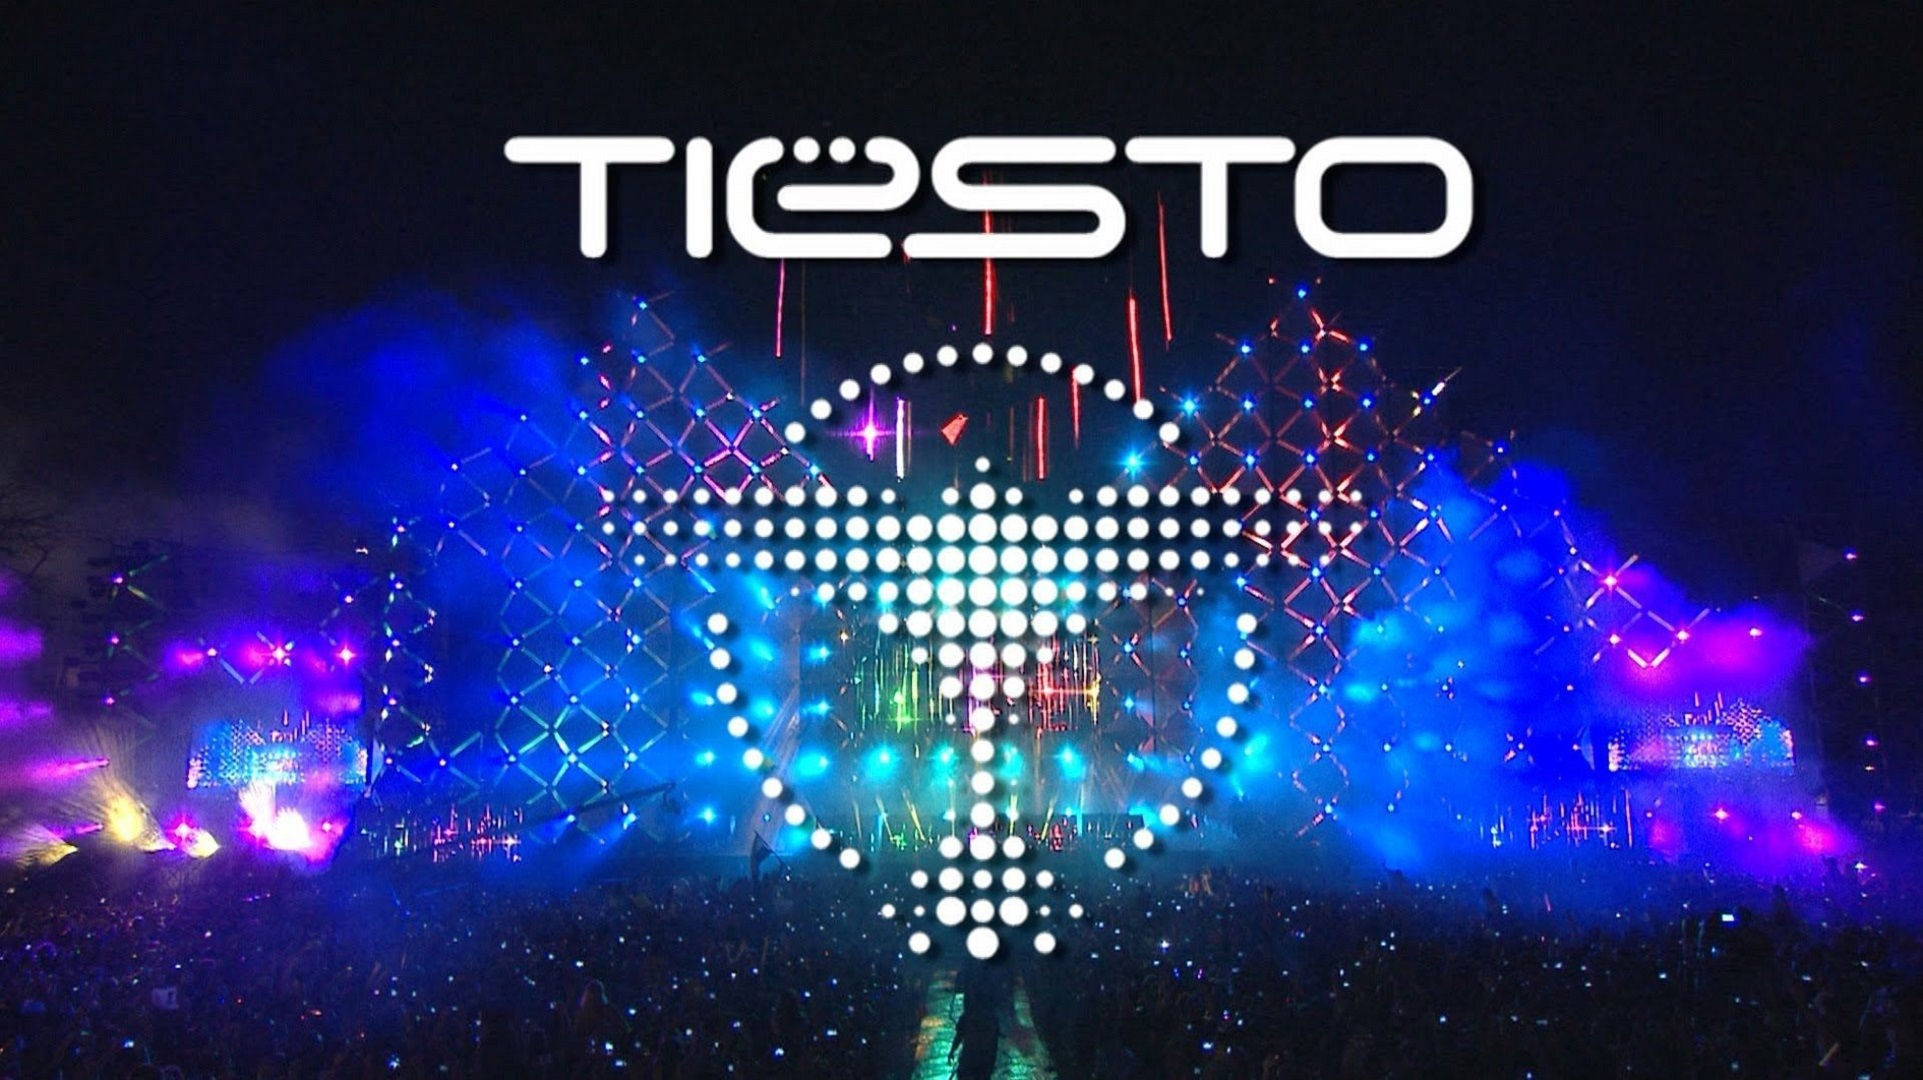 Tiesto Wallpapers Images Photos Pictures Backgrounds 1923x1080